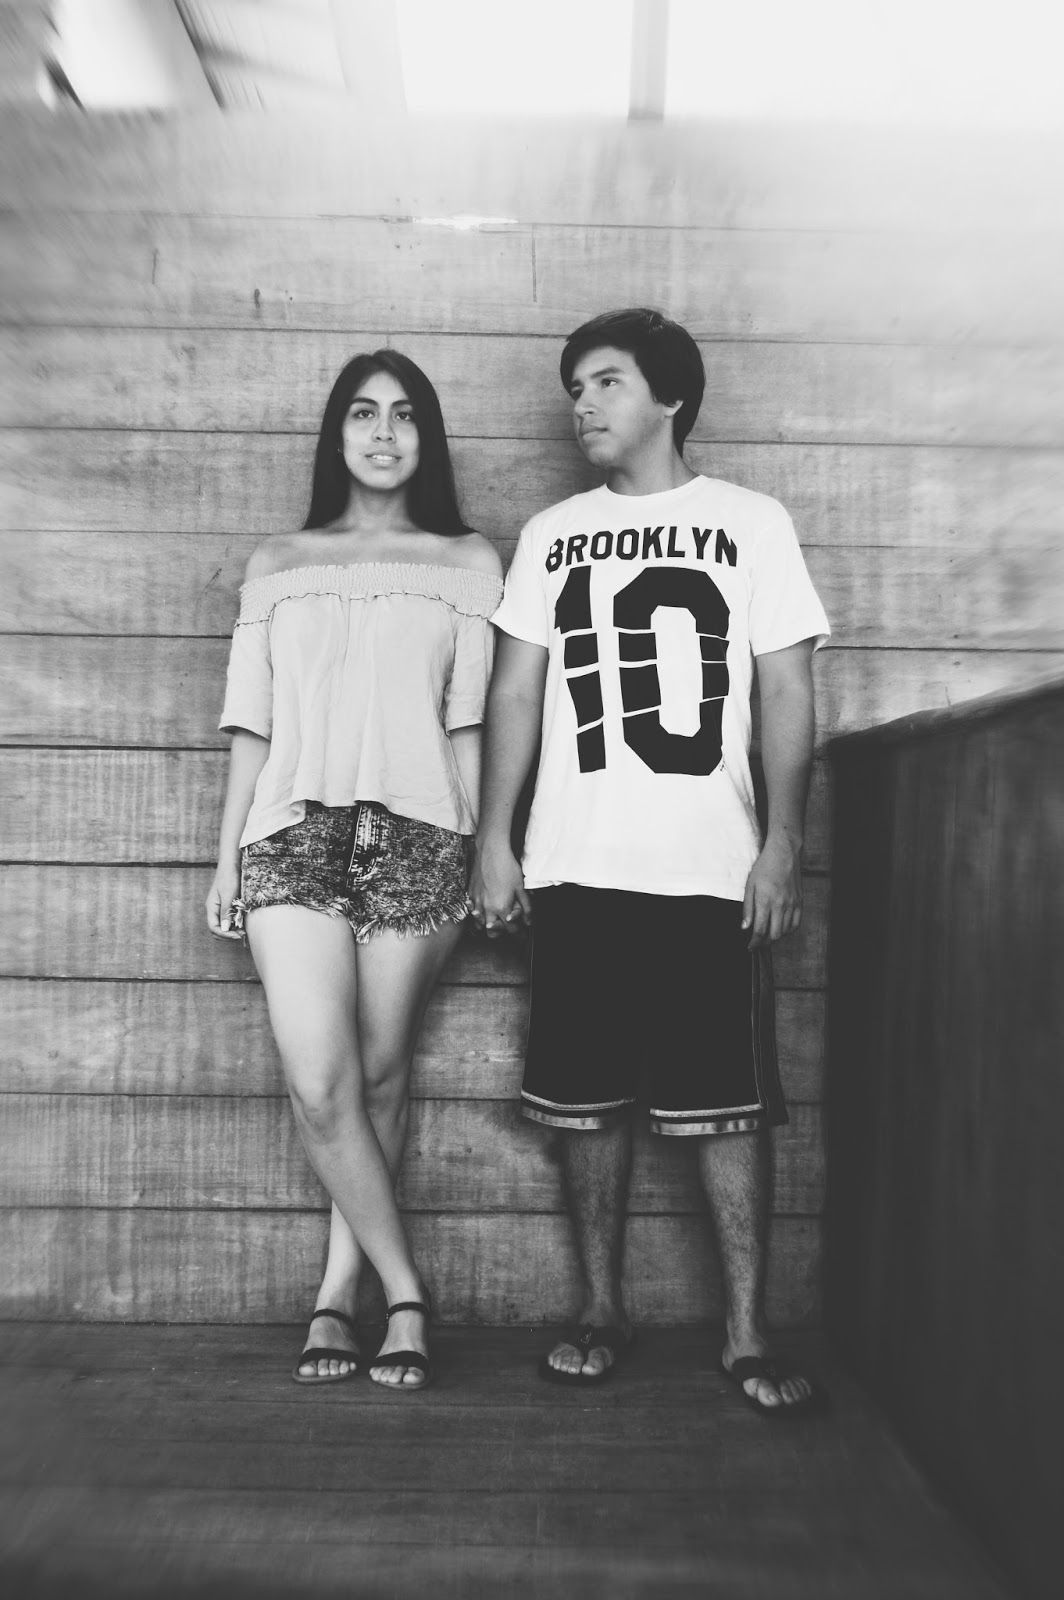 silvia-armas-tumblr-girl-boy-fashion-blogger-ecuador-love-couple-goals-cristian-aldaz-amor-parejas-poses-inspiration-ideas